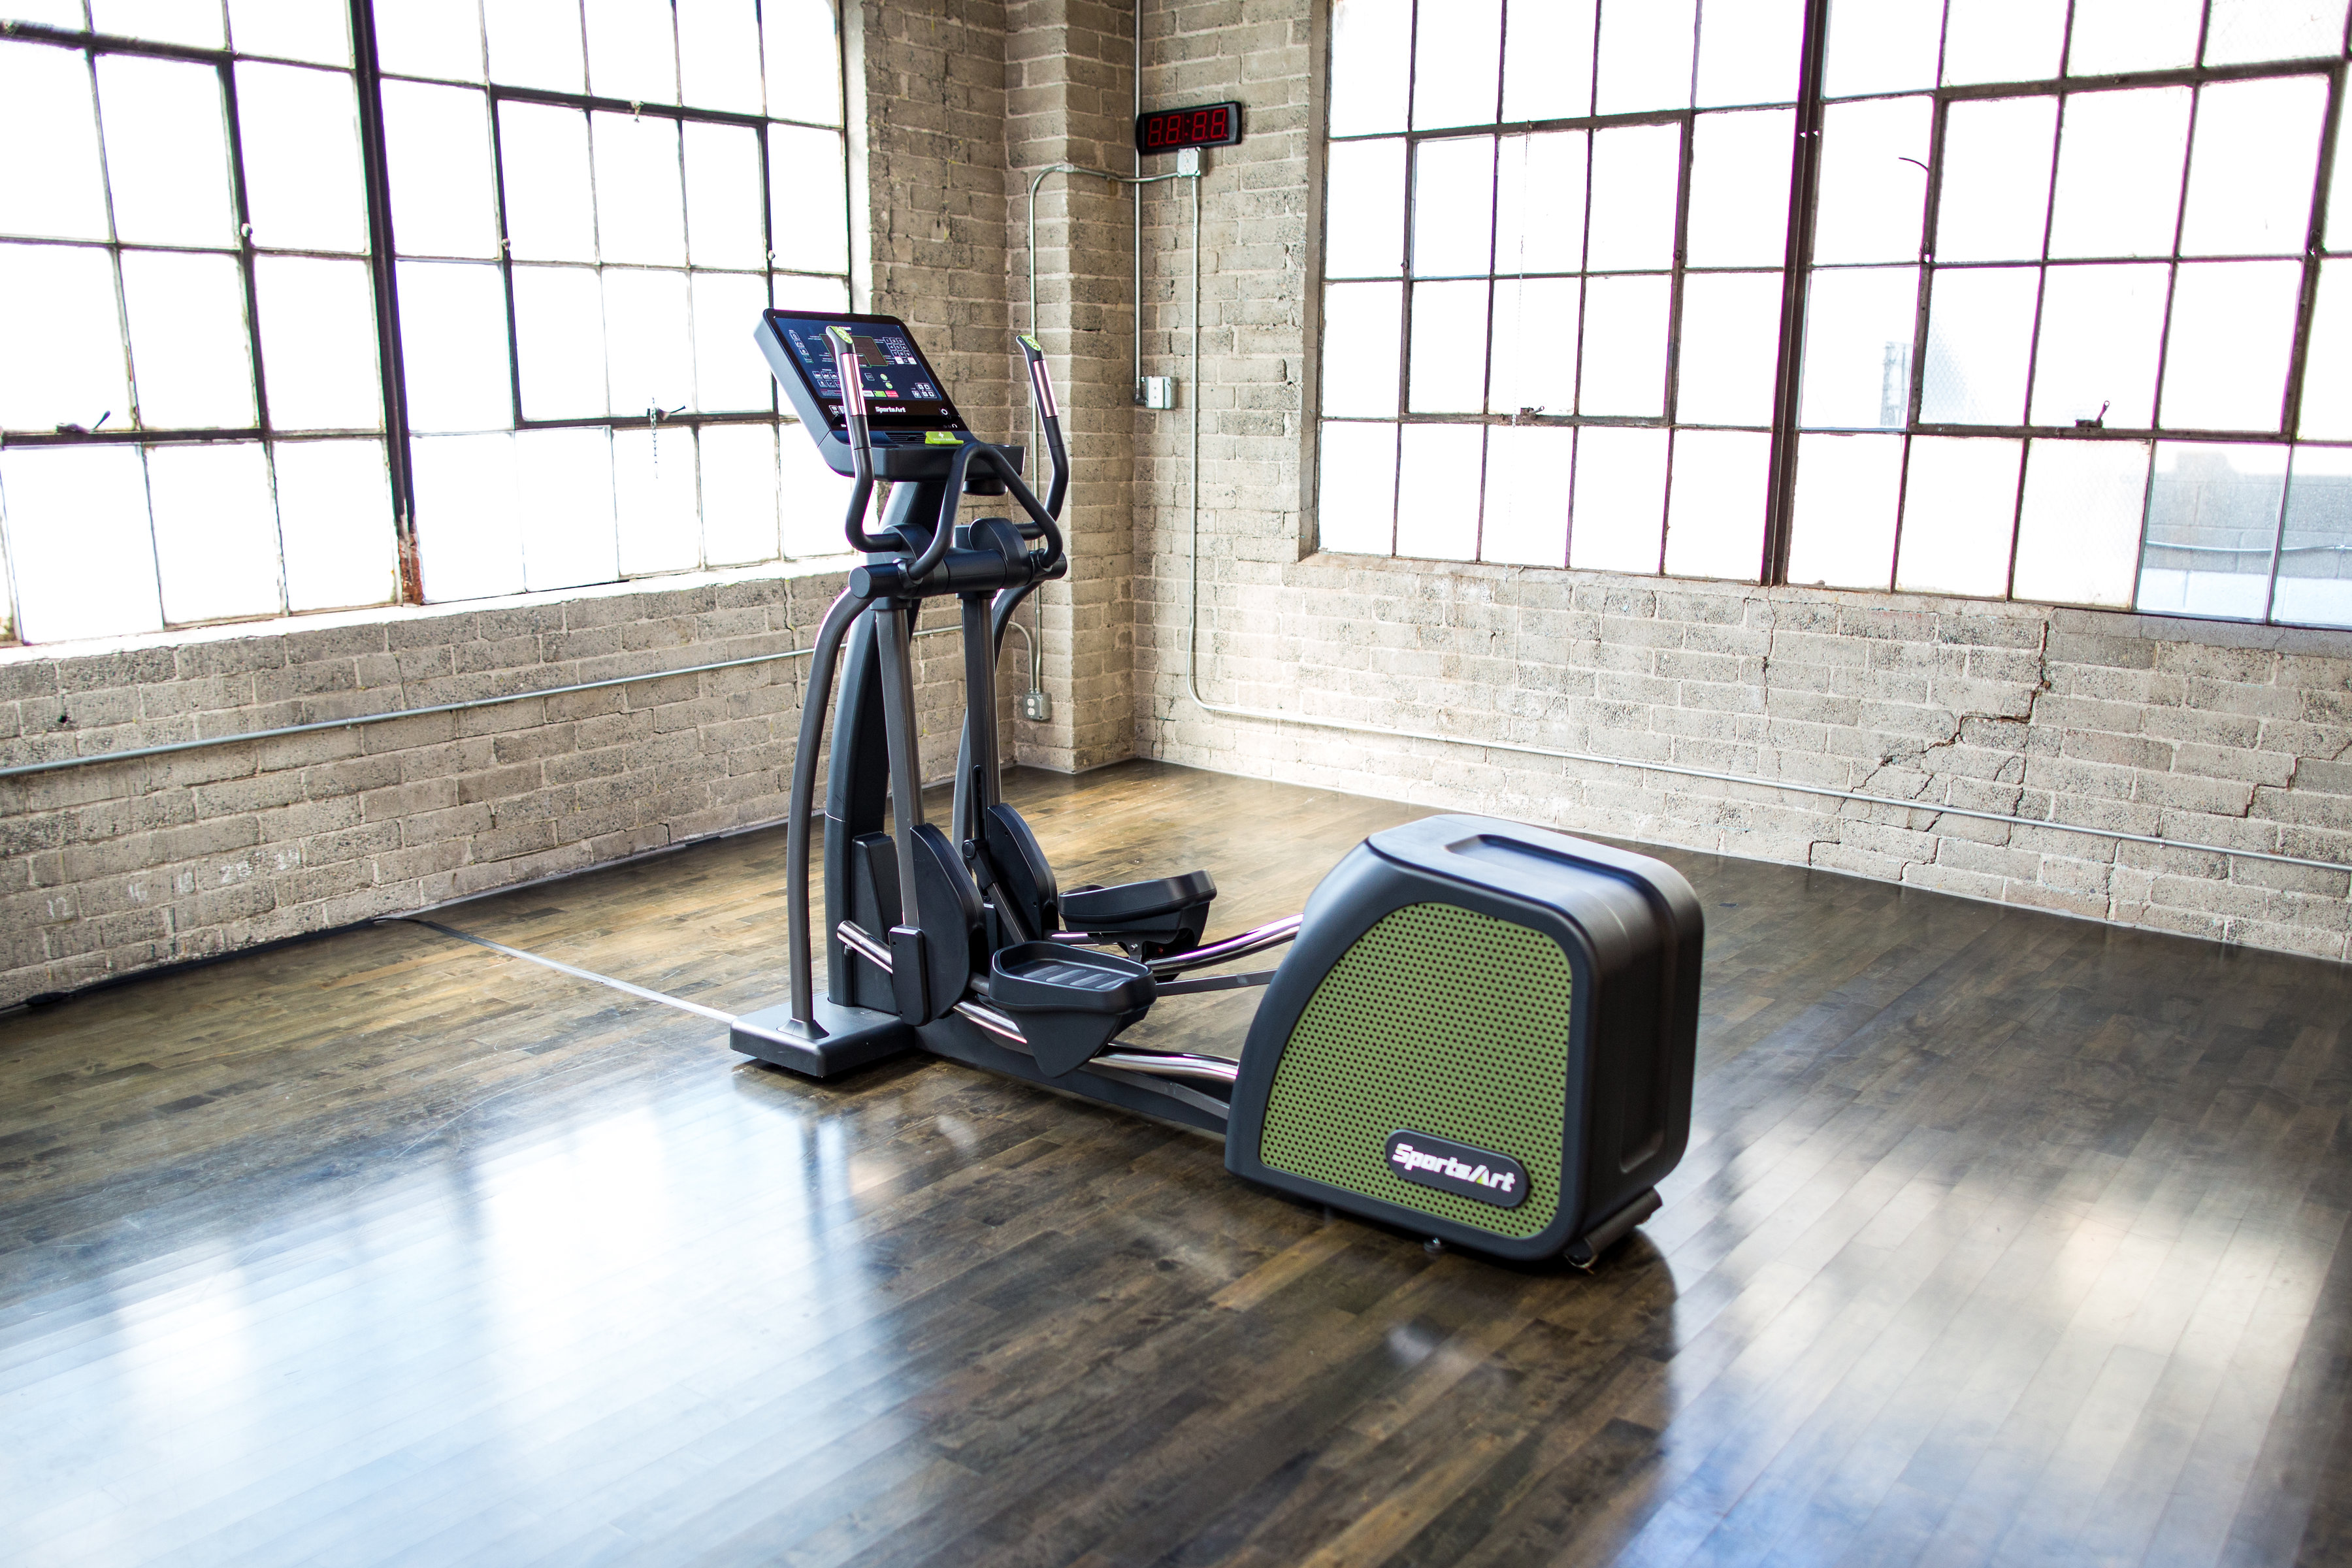 G876 ECO-POWR Elliptical